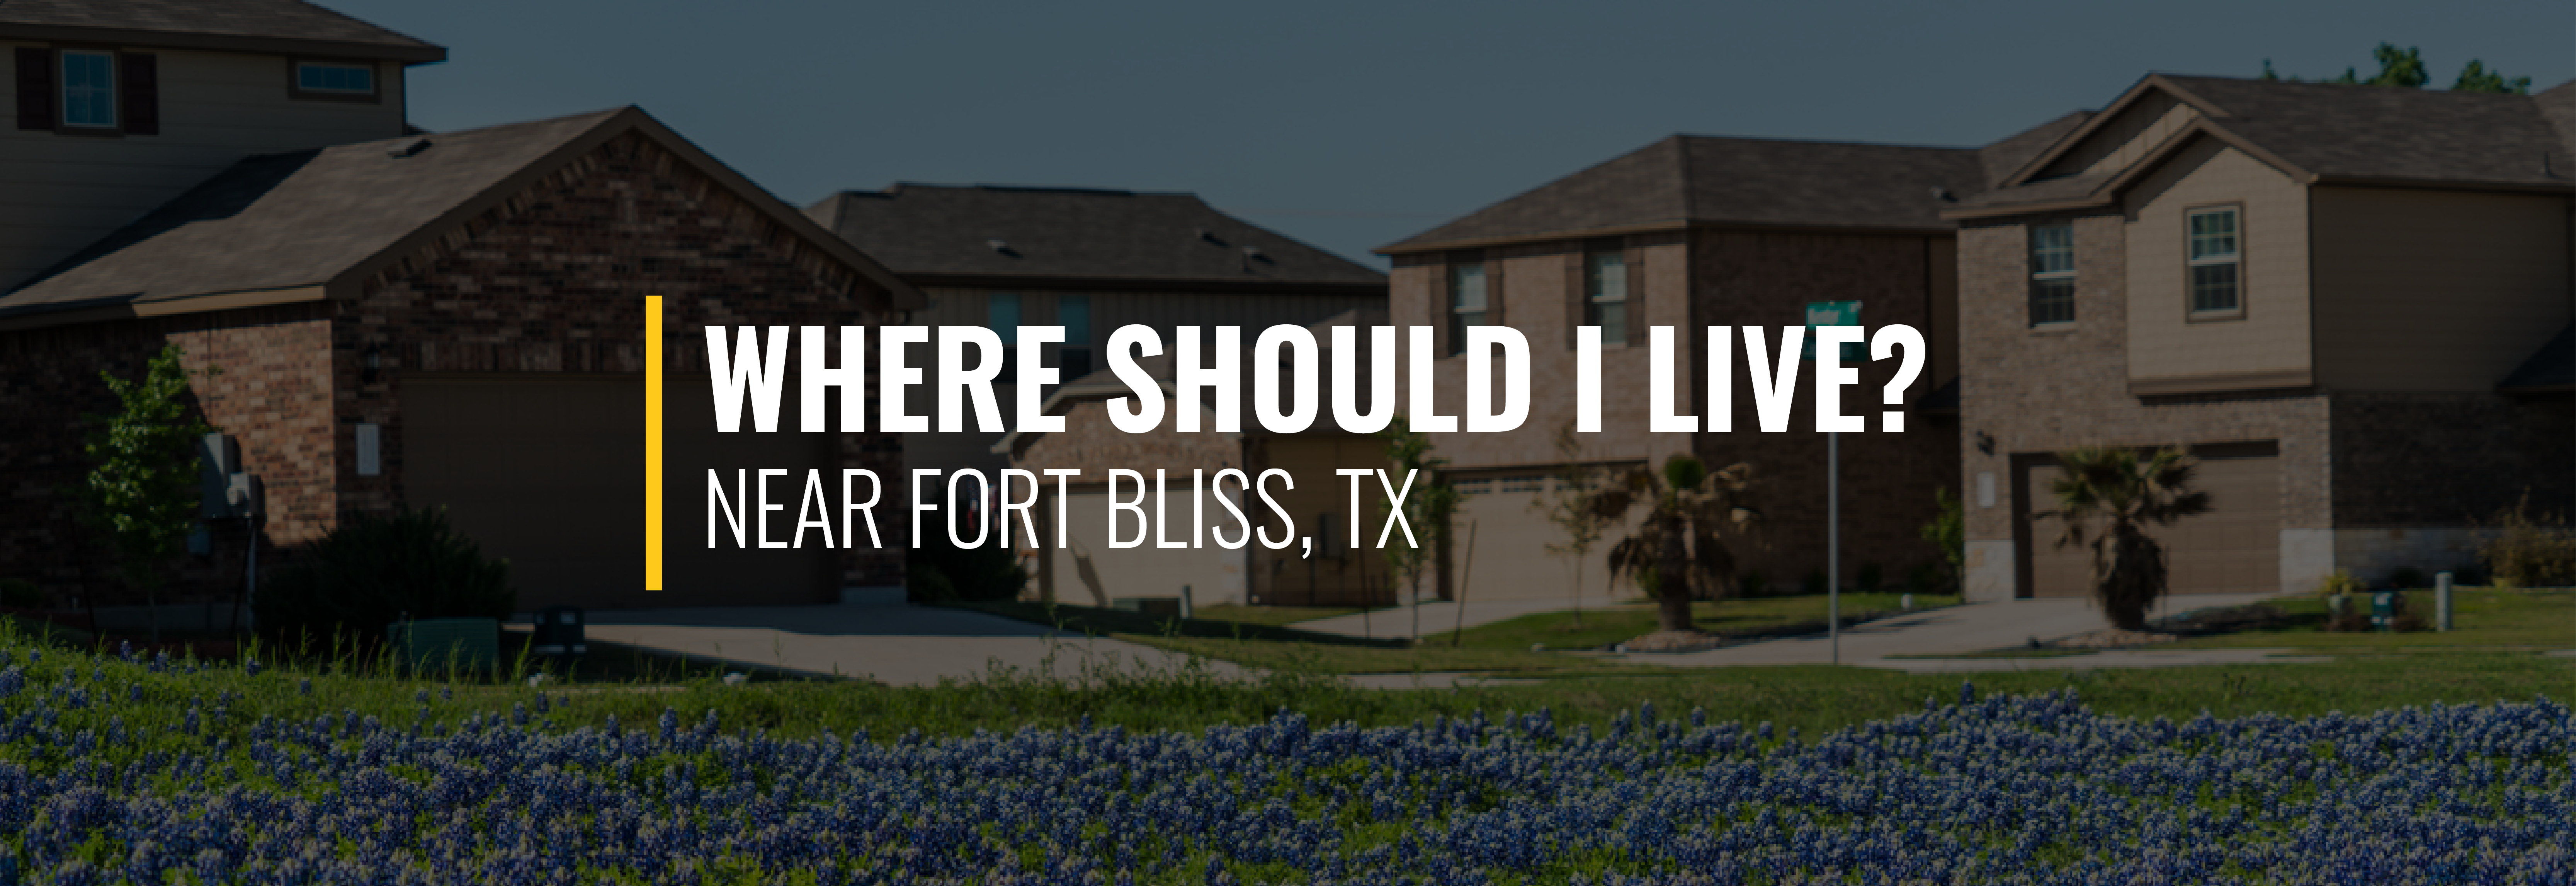 Where Should I Live Near Fort Bliss?